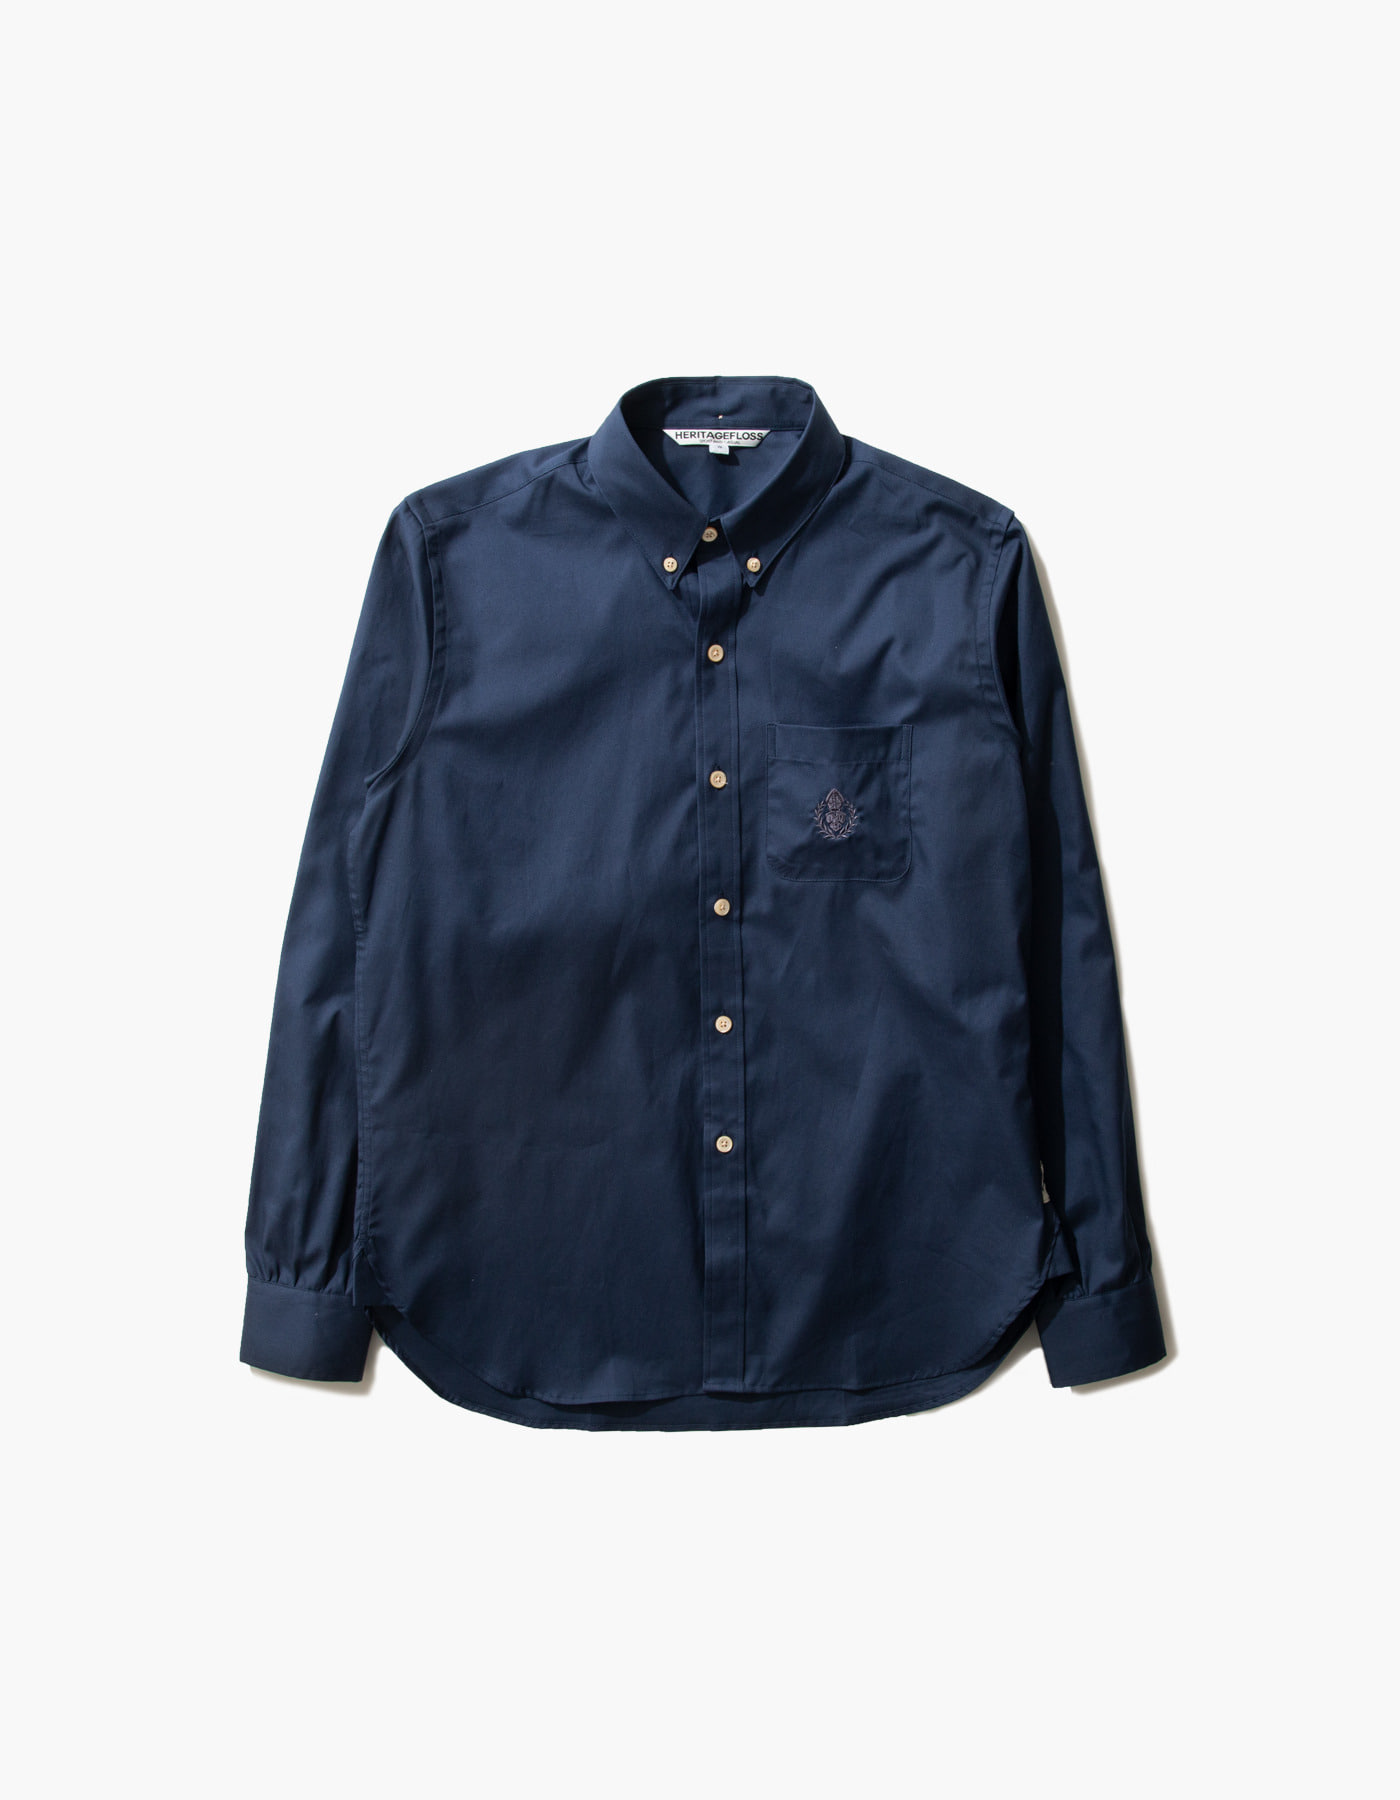 HFC COMBED OXFORD SHIRTS / NAVY